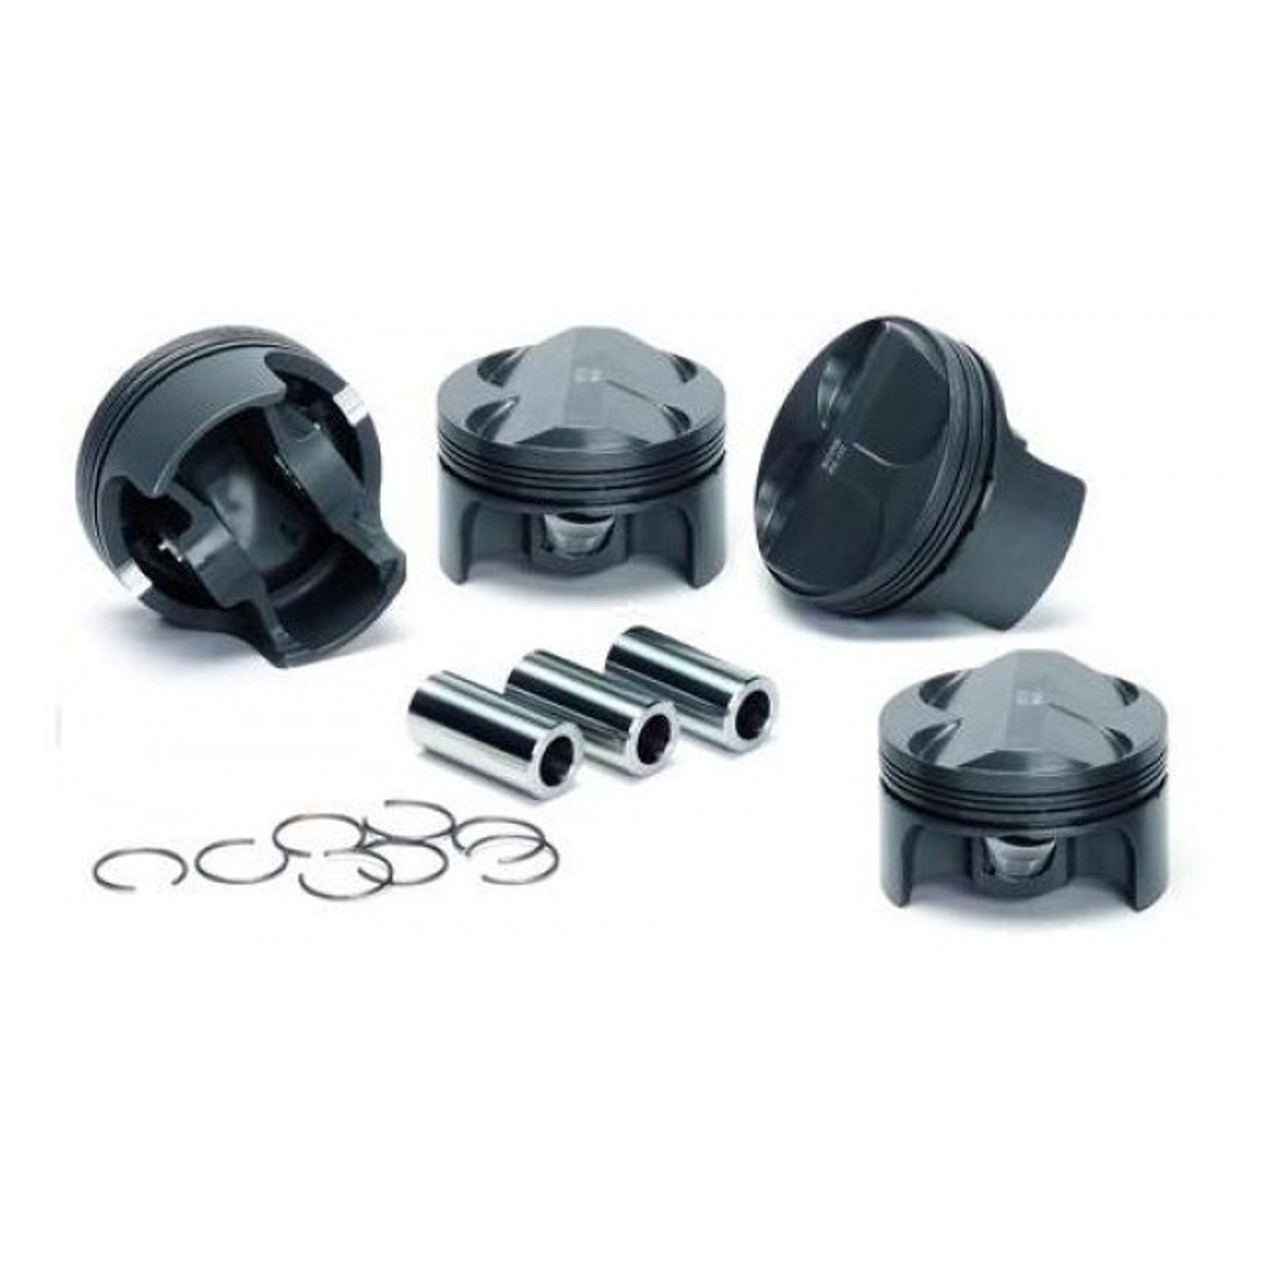 For Head Stud Kit Mazda Miata MX-5 BP B6 NA NB Studs 1.6L 1.8L